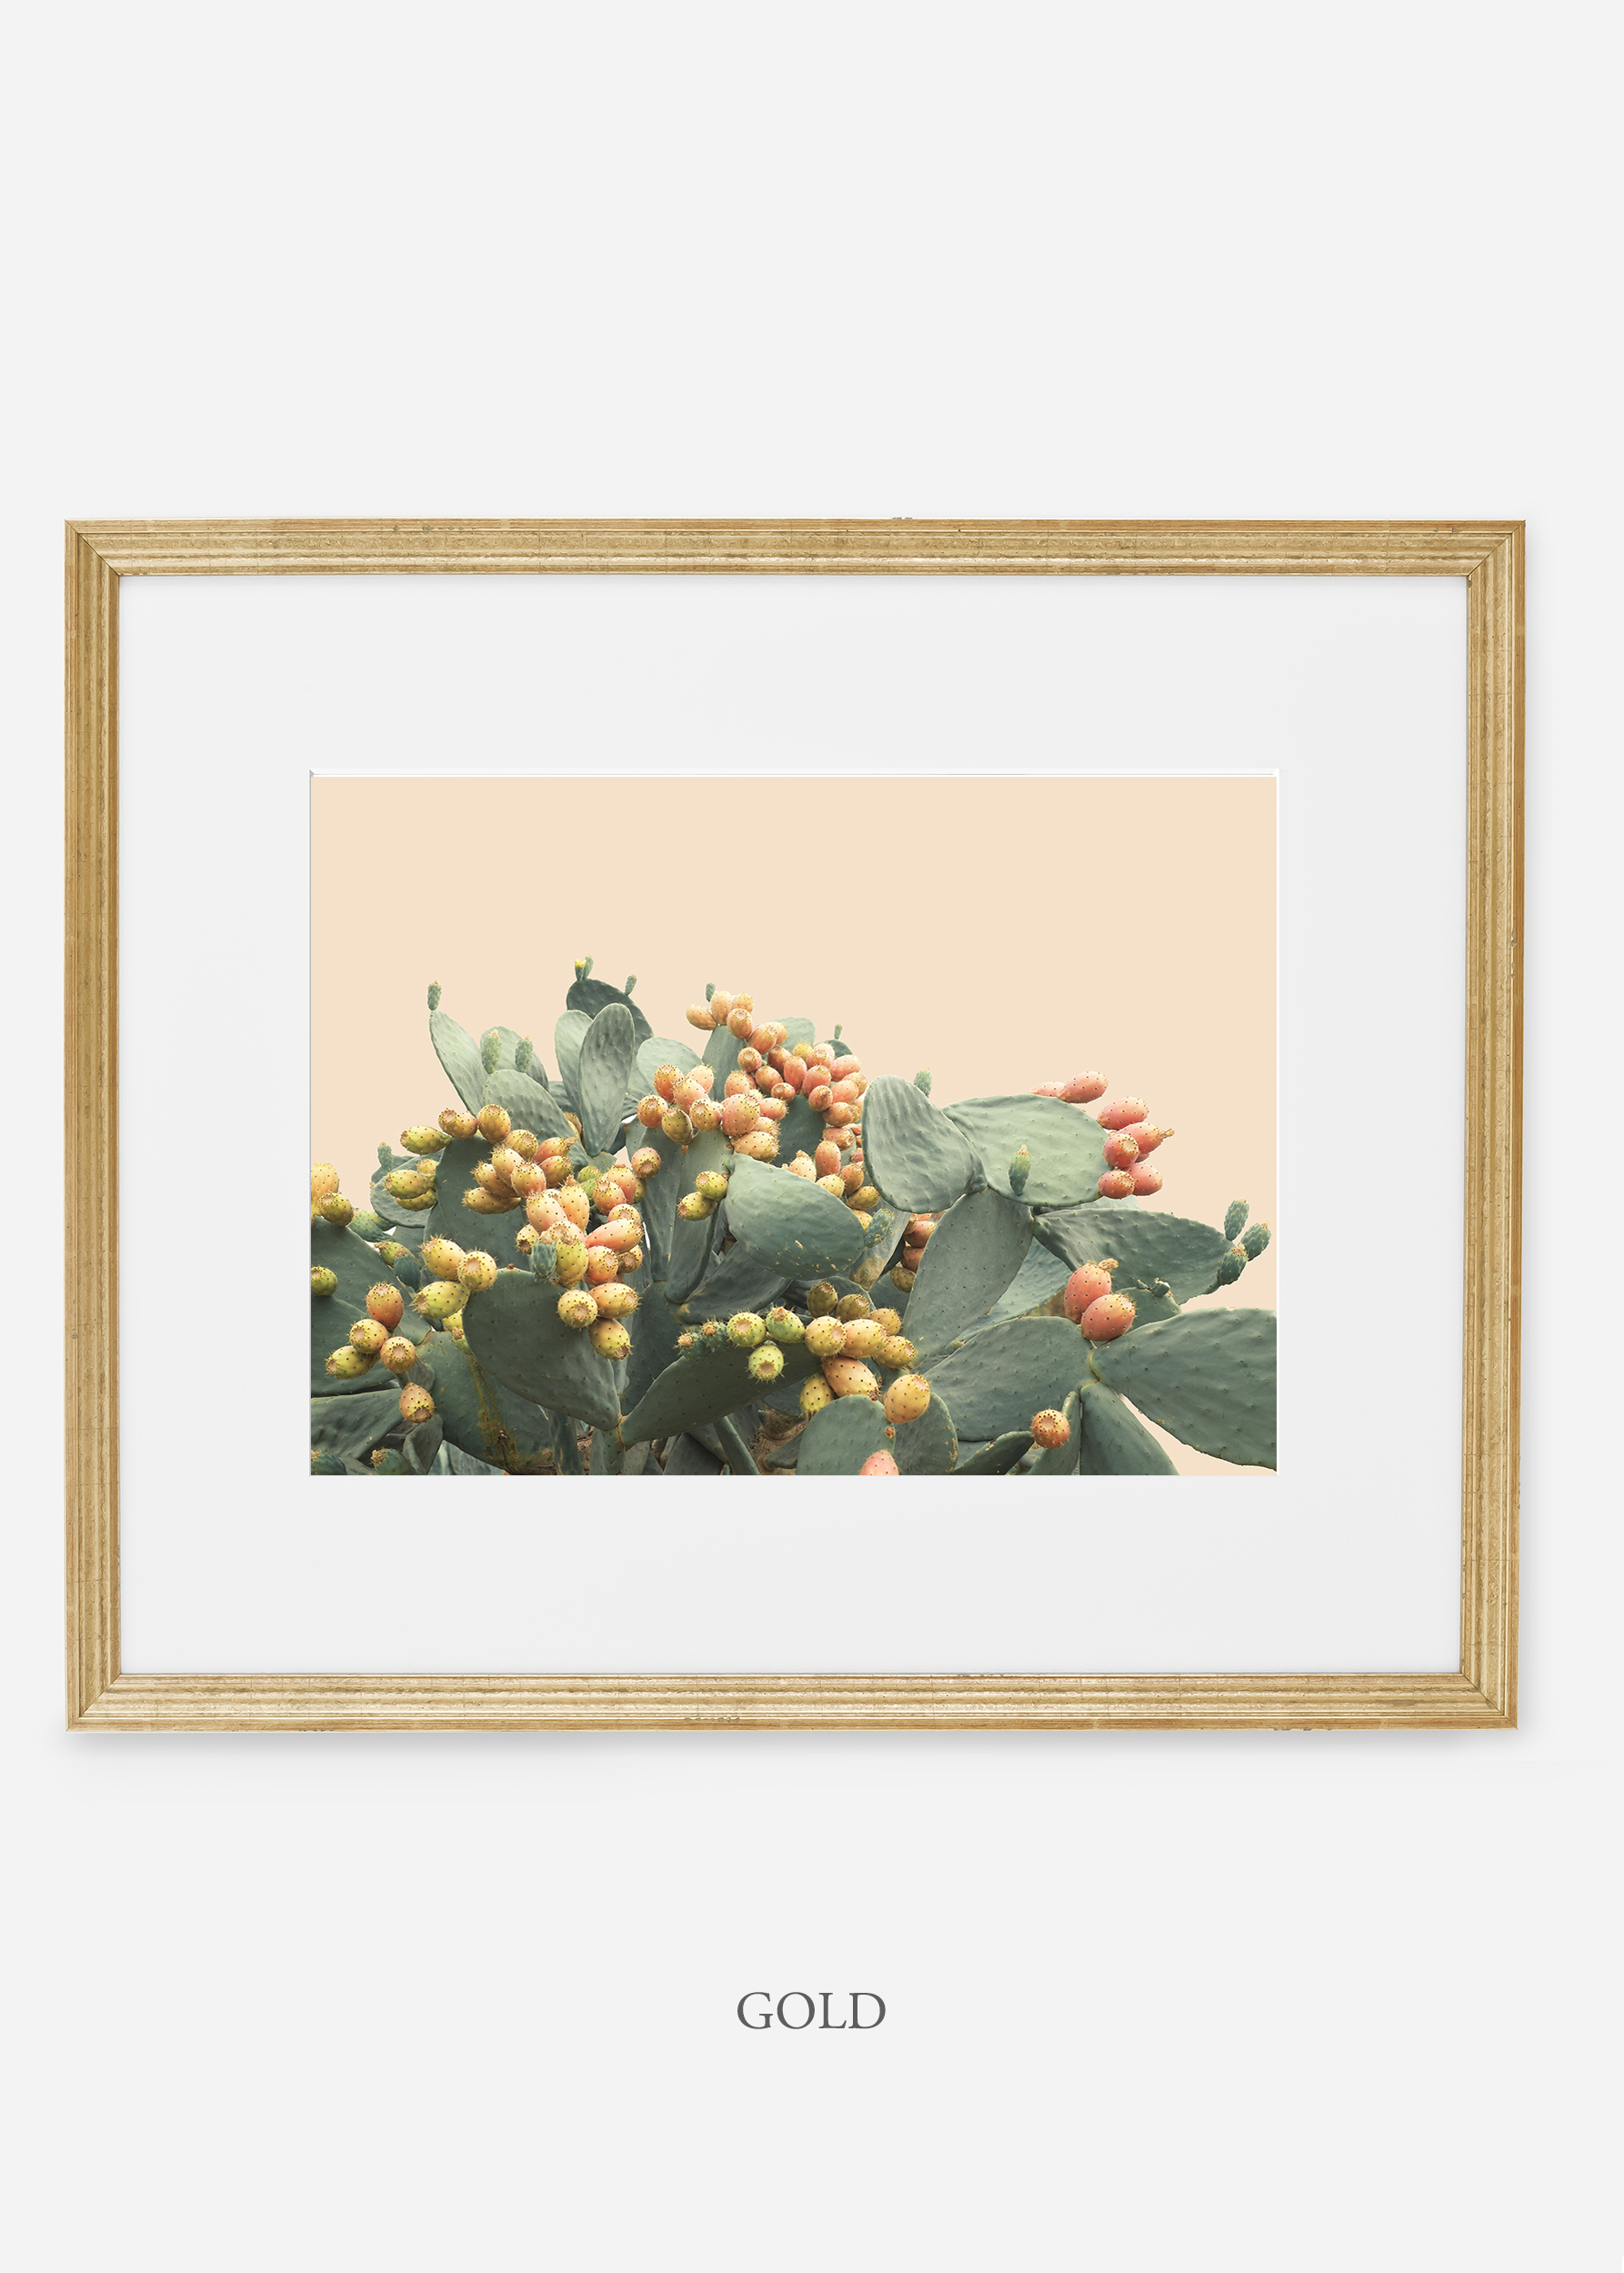 WilderCalifornia_interiordesign_art_goldframe_PricklyPearNo.1.jpg